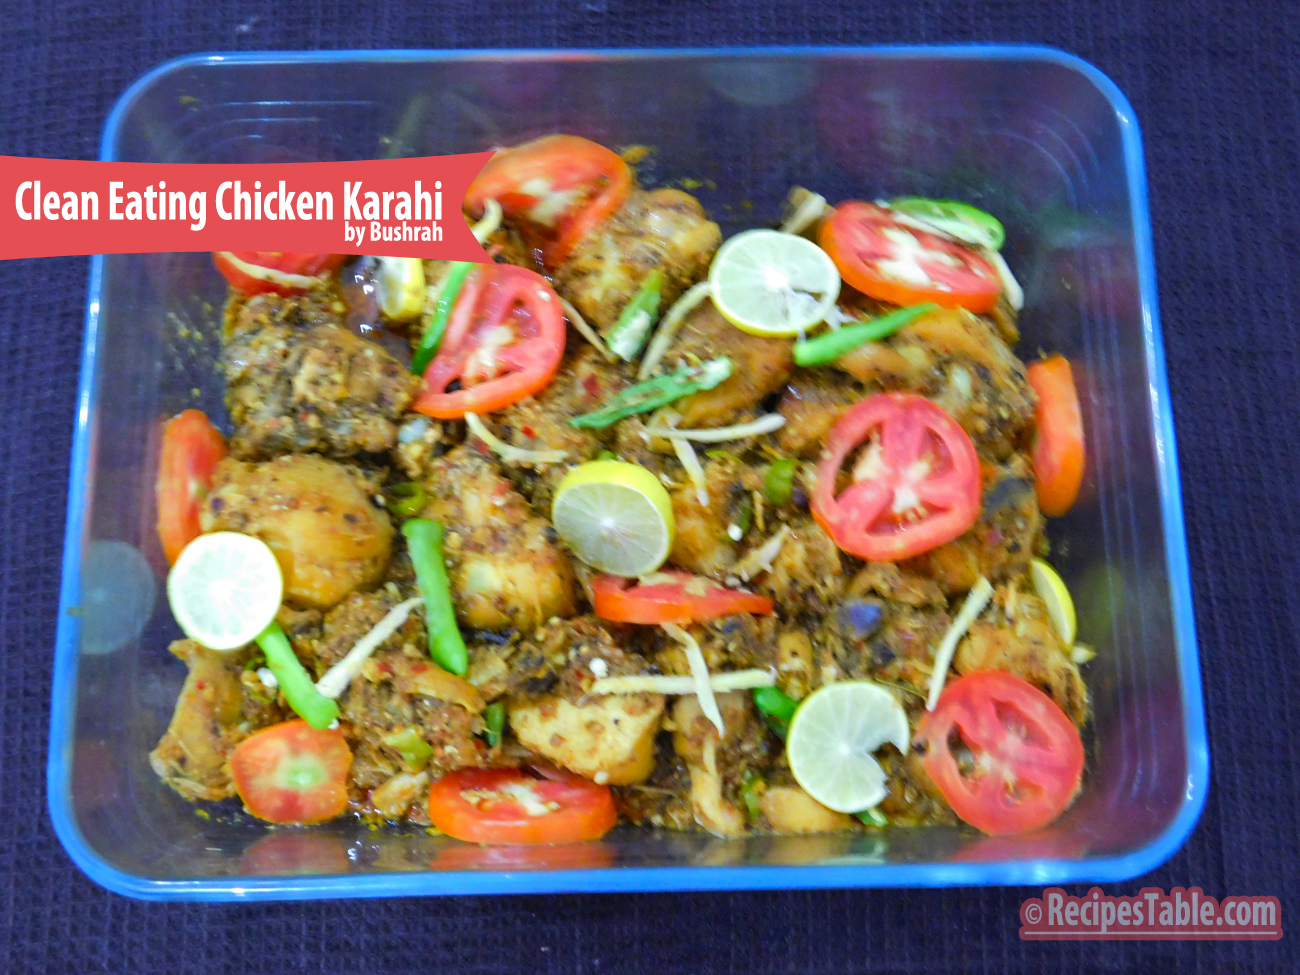 Recipe clean eating chicken karahi recipes table today iam going to share a clean eating version of chicken karahi it is very delicious and easy to make a lighter and healthier version of the pakistani forumfinder Gallery